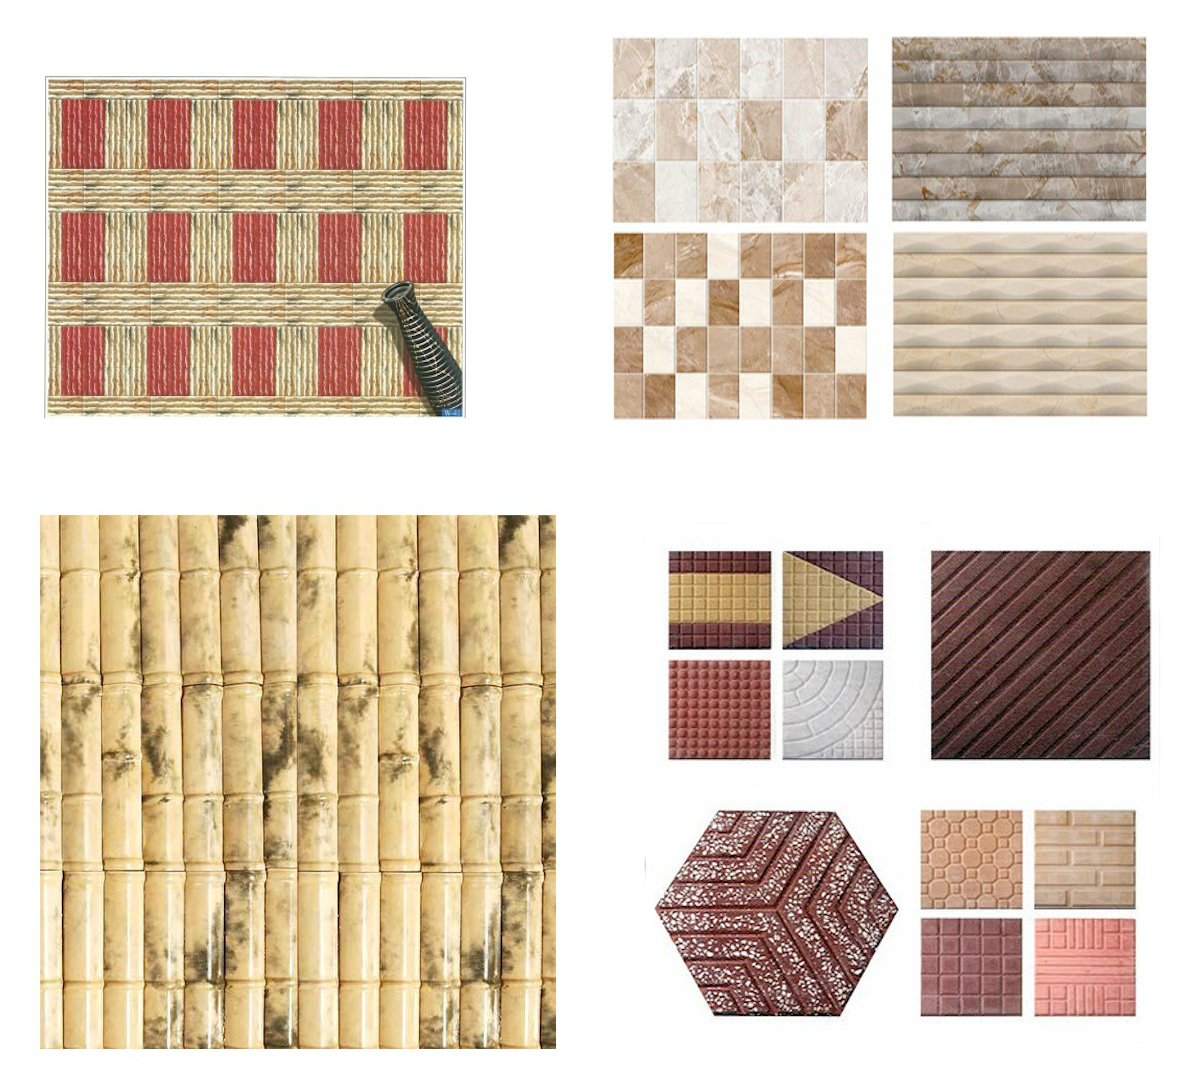 Kitchen Wall Tiles India Price: Buildmantra.com: Online At Best Price In India , Building